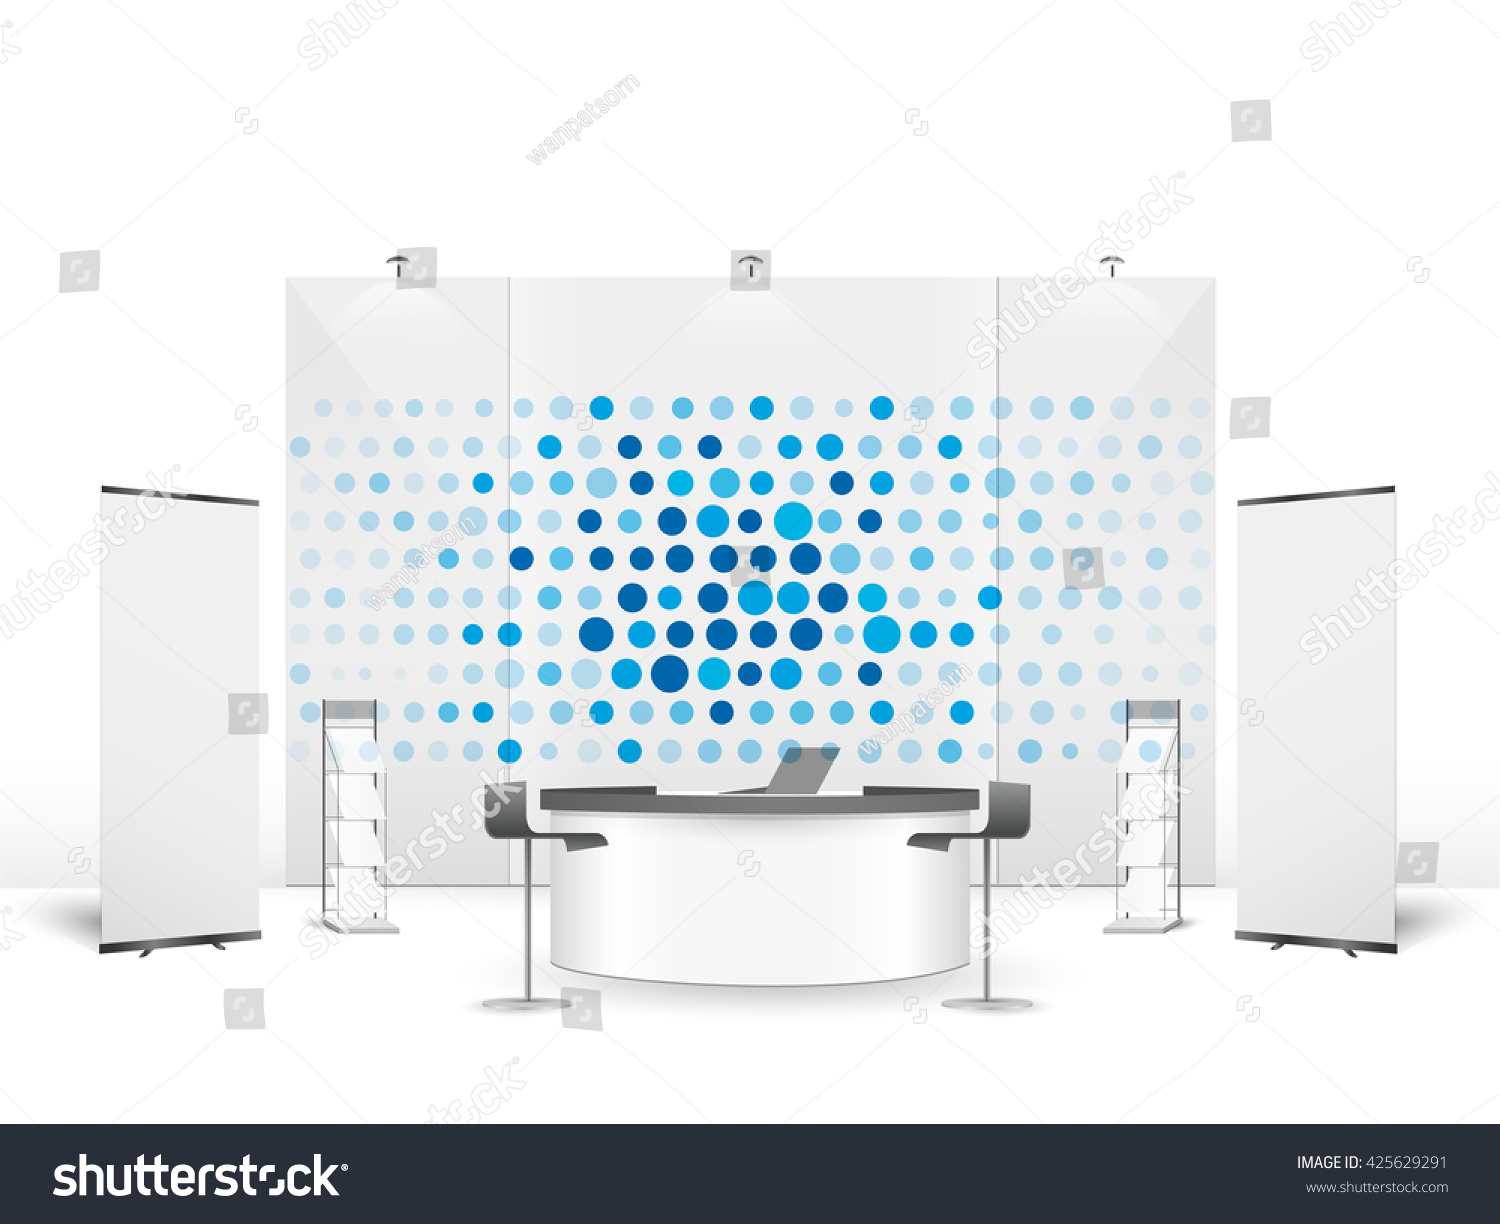 Exhibition Stand Design Vector : White creative exhibition stand design booth 스톡 벡터